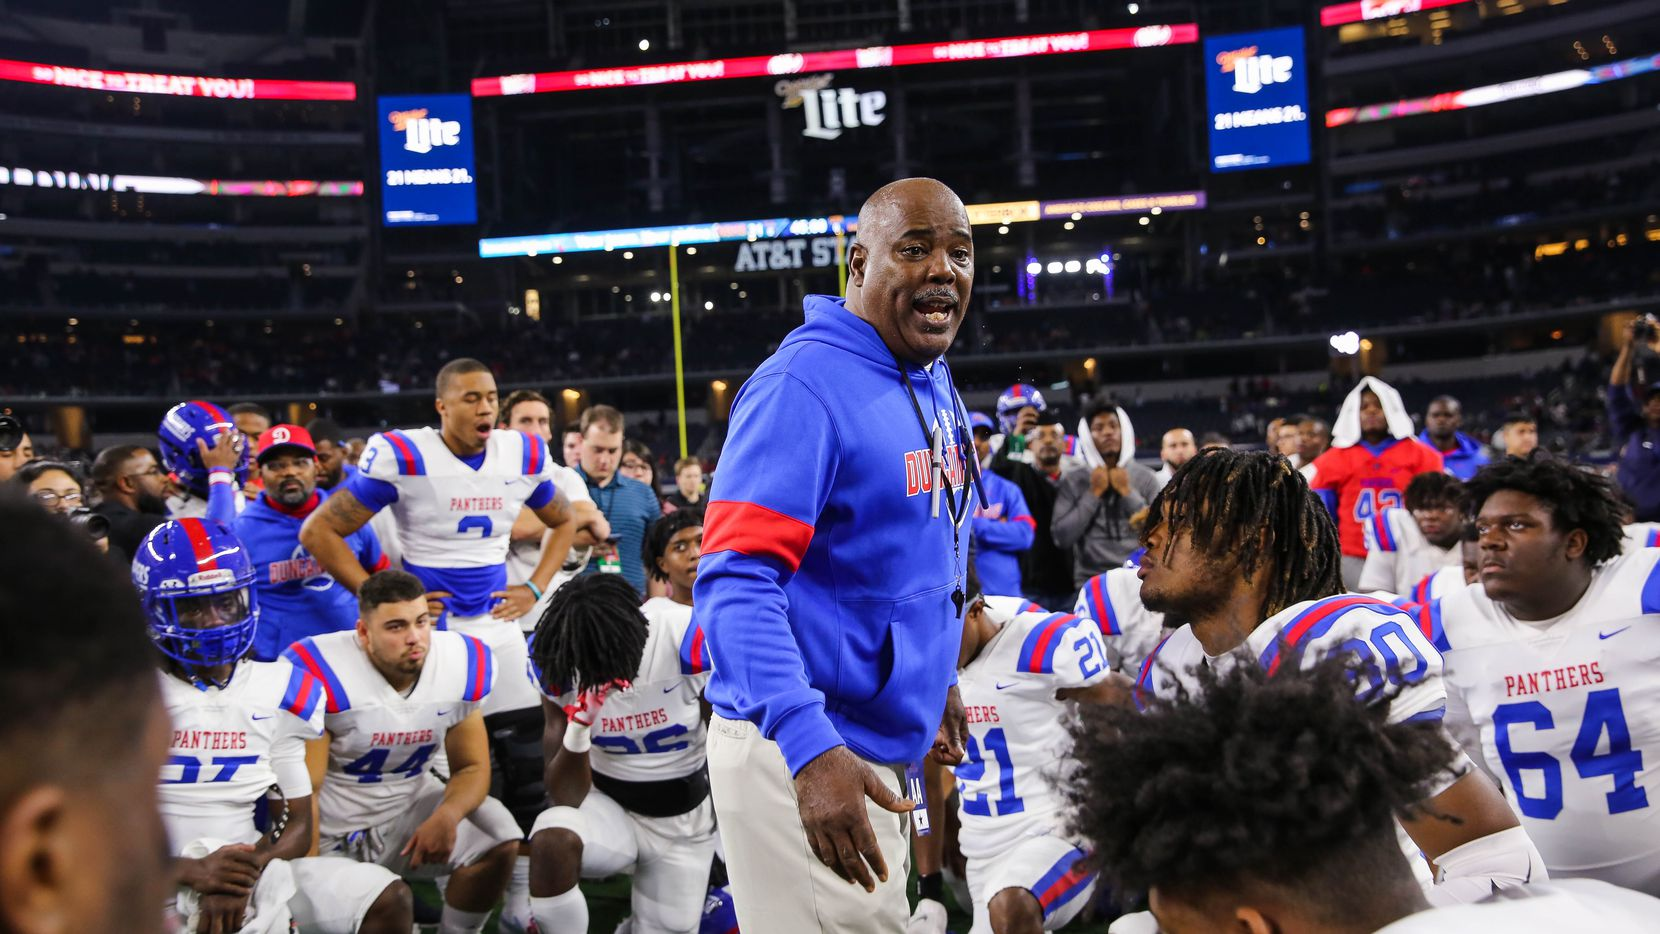 Duncanville's coach Reginald Samples consoles speaks to his team after losing a Class 6A Division I state championship game against North Shore at the AT&T Stadium in Arlington, on Saturday, December 21, 2019. North Shore won 31-17.